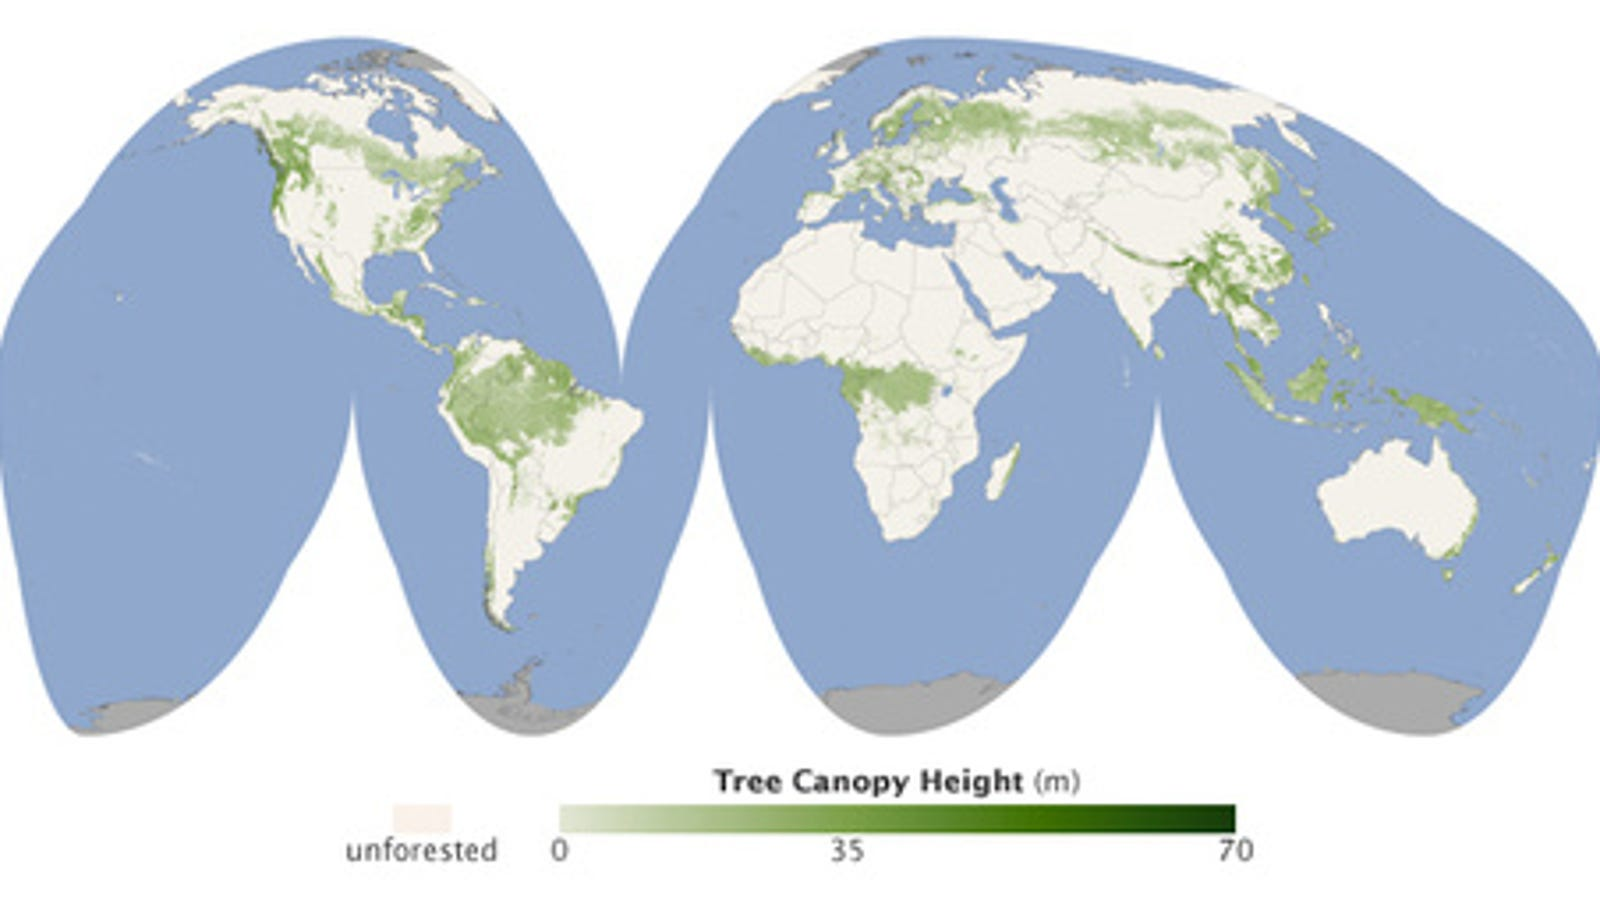 The height of the world's forests in map form